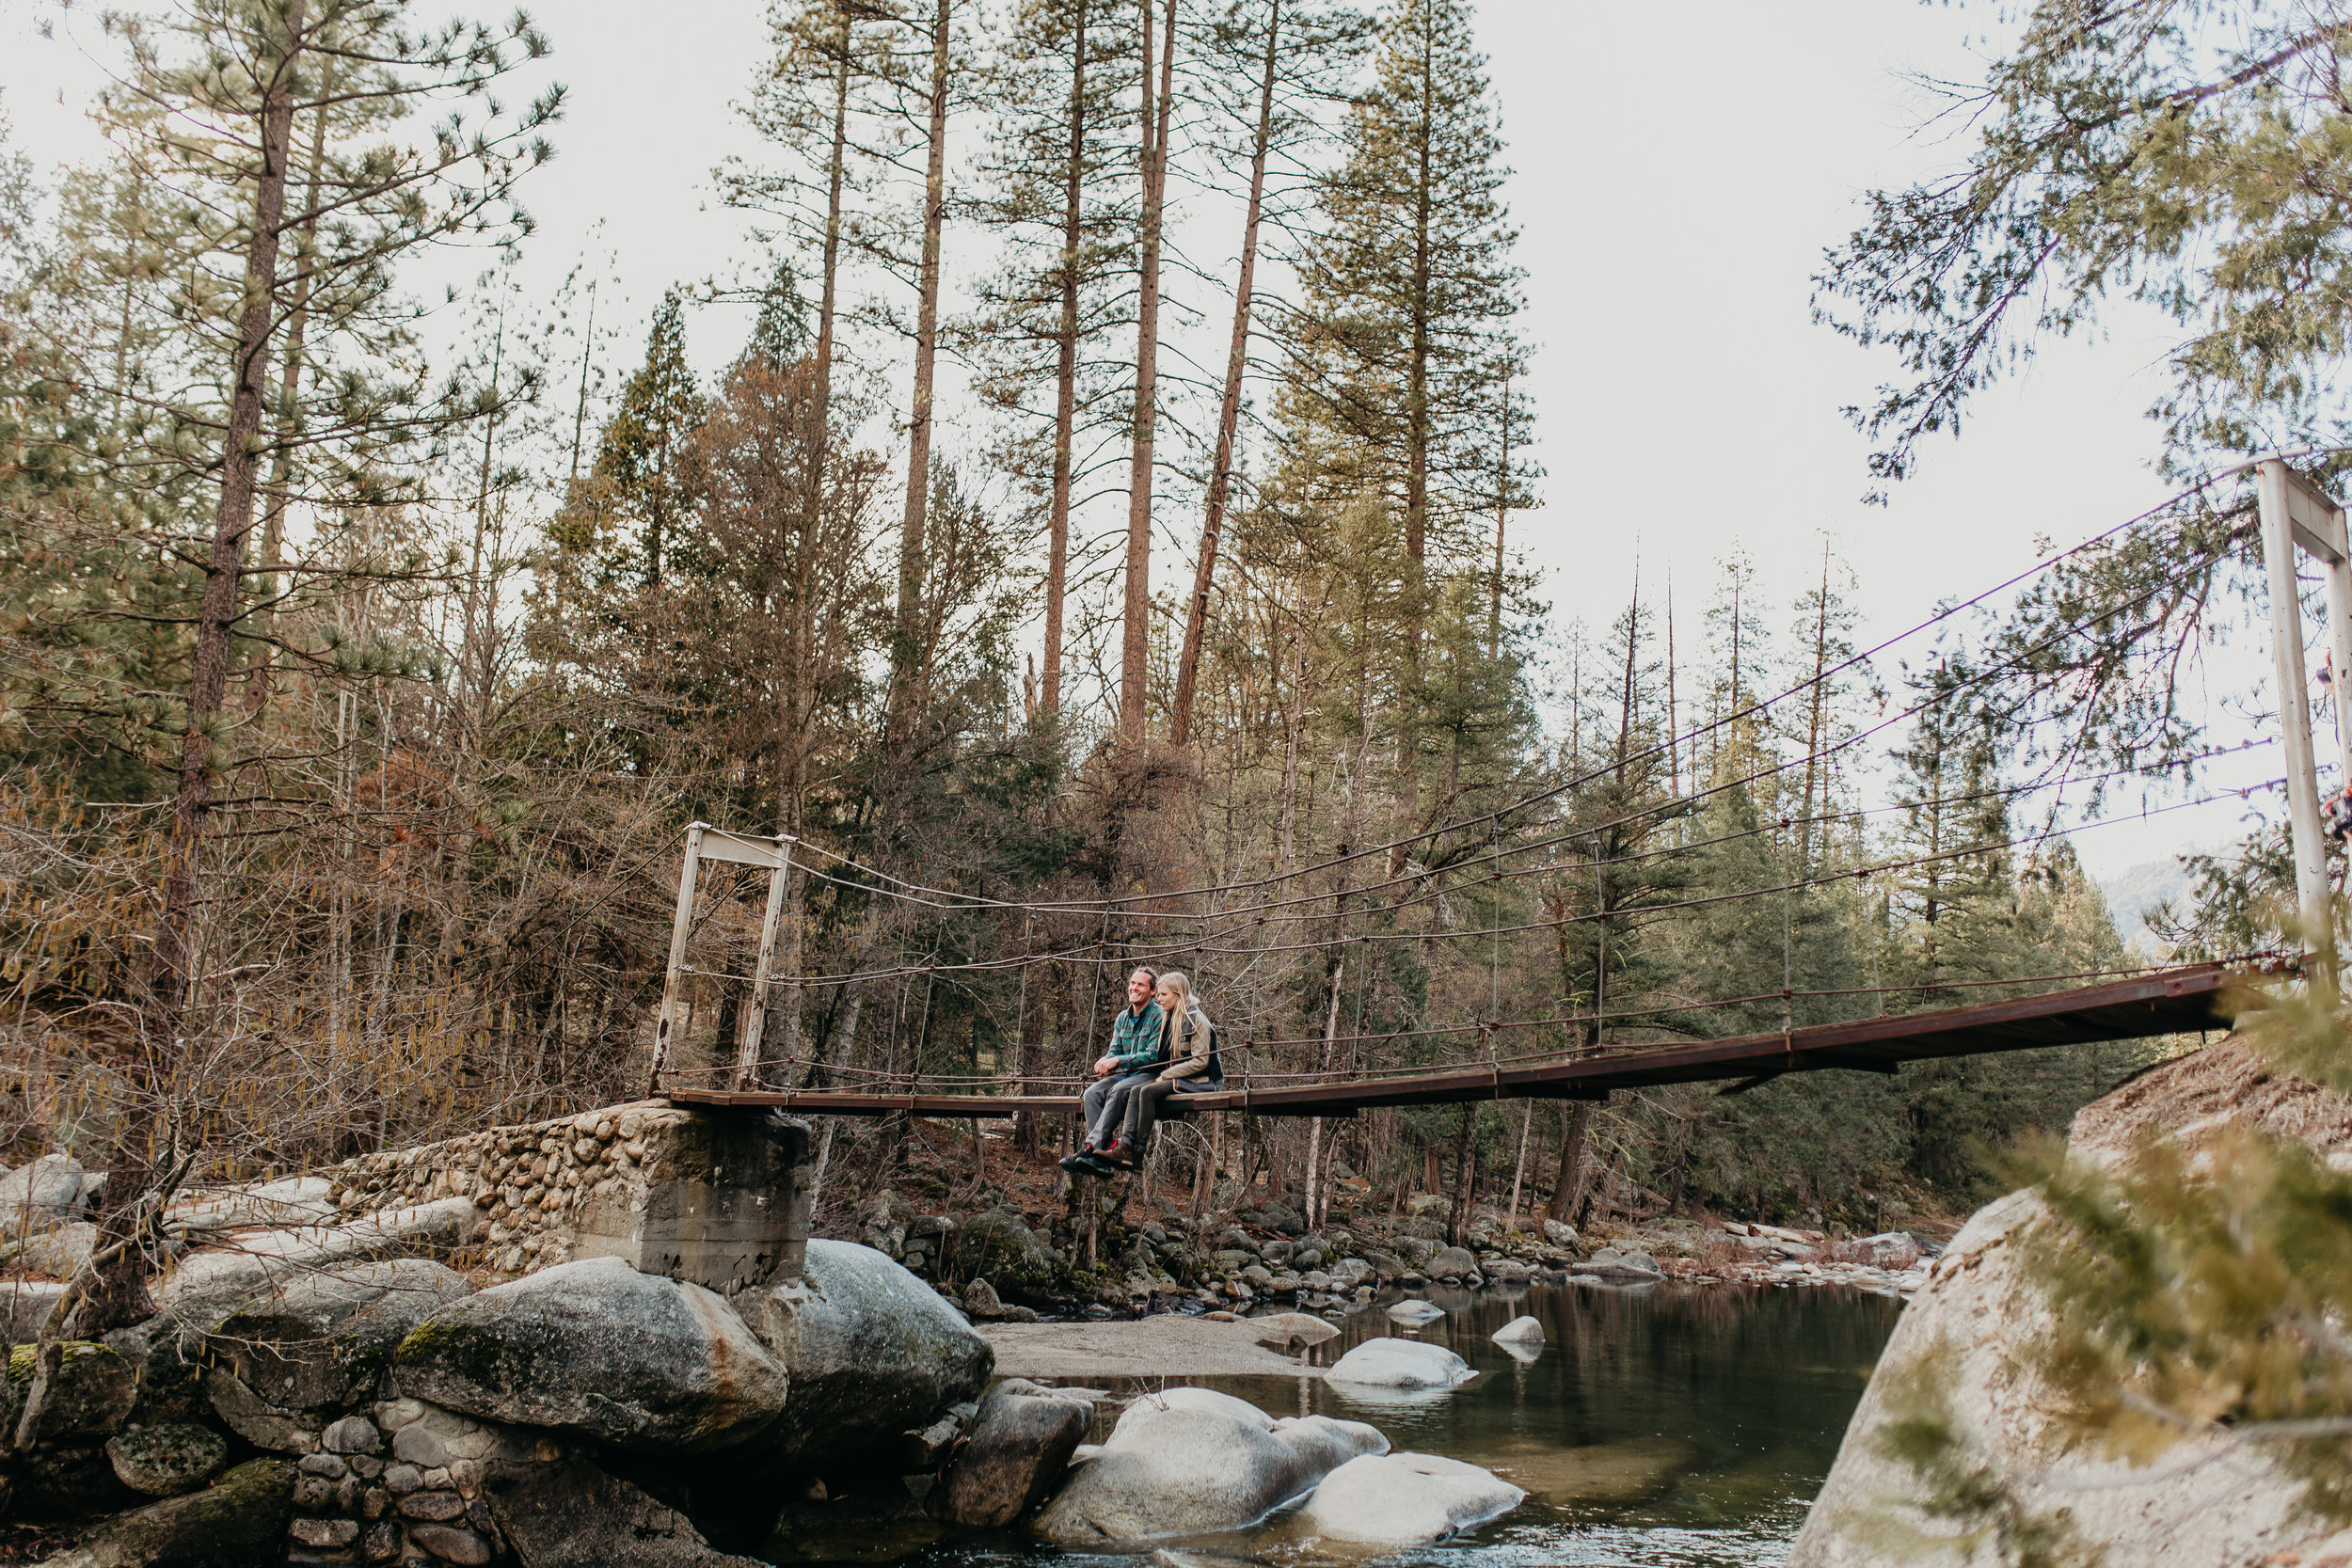 nicole-daacke-photography-yosemite-riverside-adventurous-engagement-photos-in-yosemite-national-park-elopement-photographer-weddings-travel-destination-wedding-eloping-elope-pine-forest-39.jpg